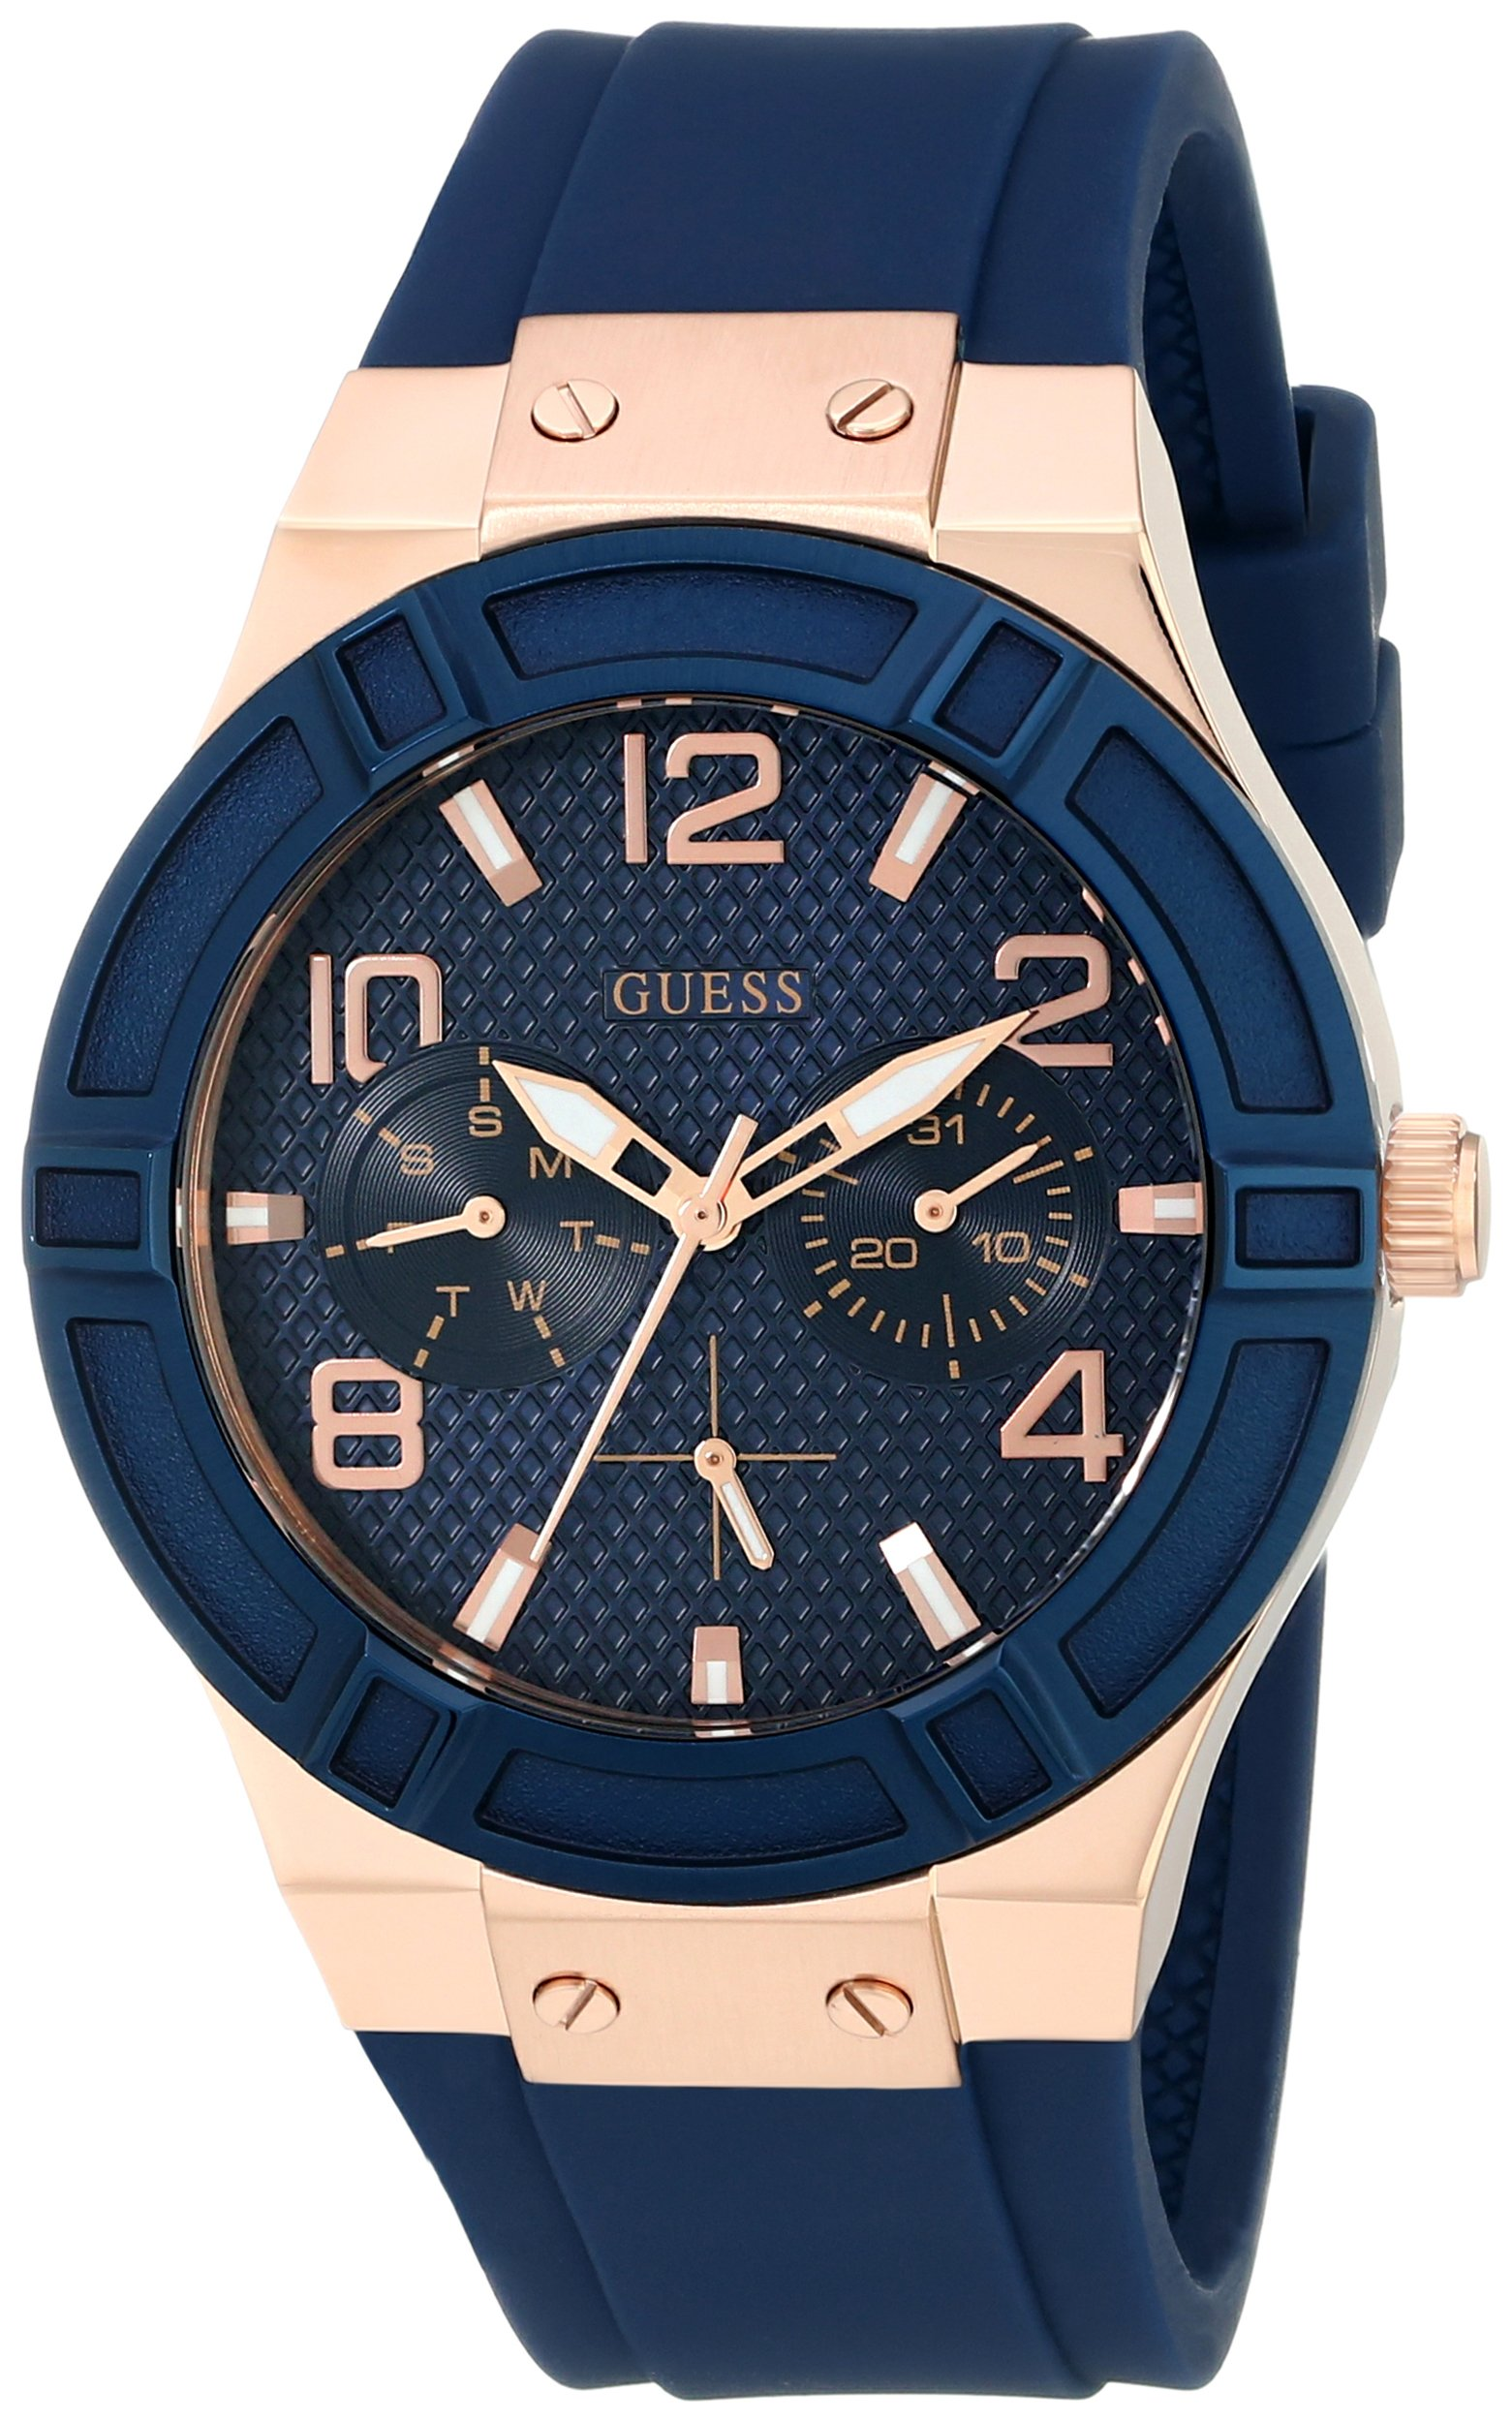 GUESS Women's Rigor Stainless Steel Japanese Quartz Watch with Silicone Strap, Blue, 24 (Model: U0571L1) by GUESS